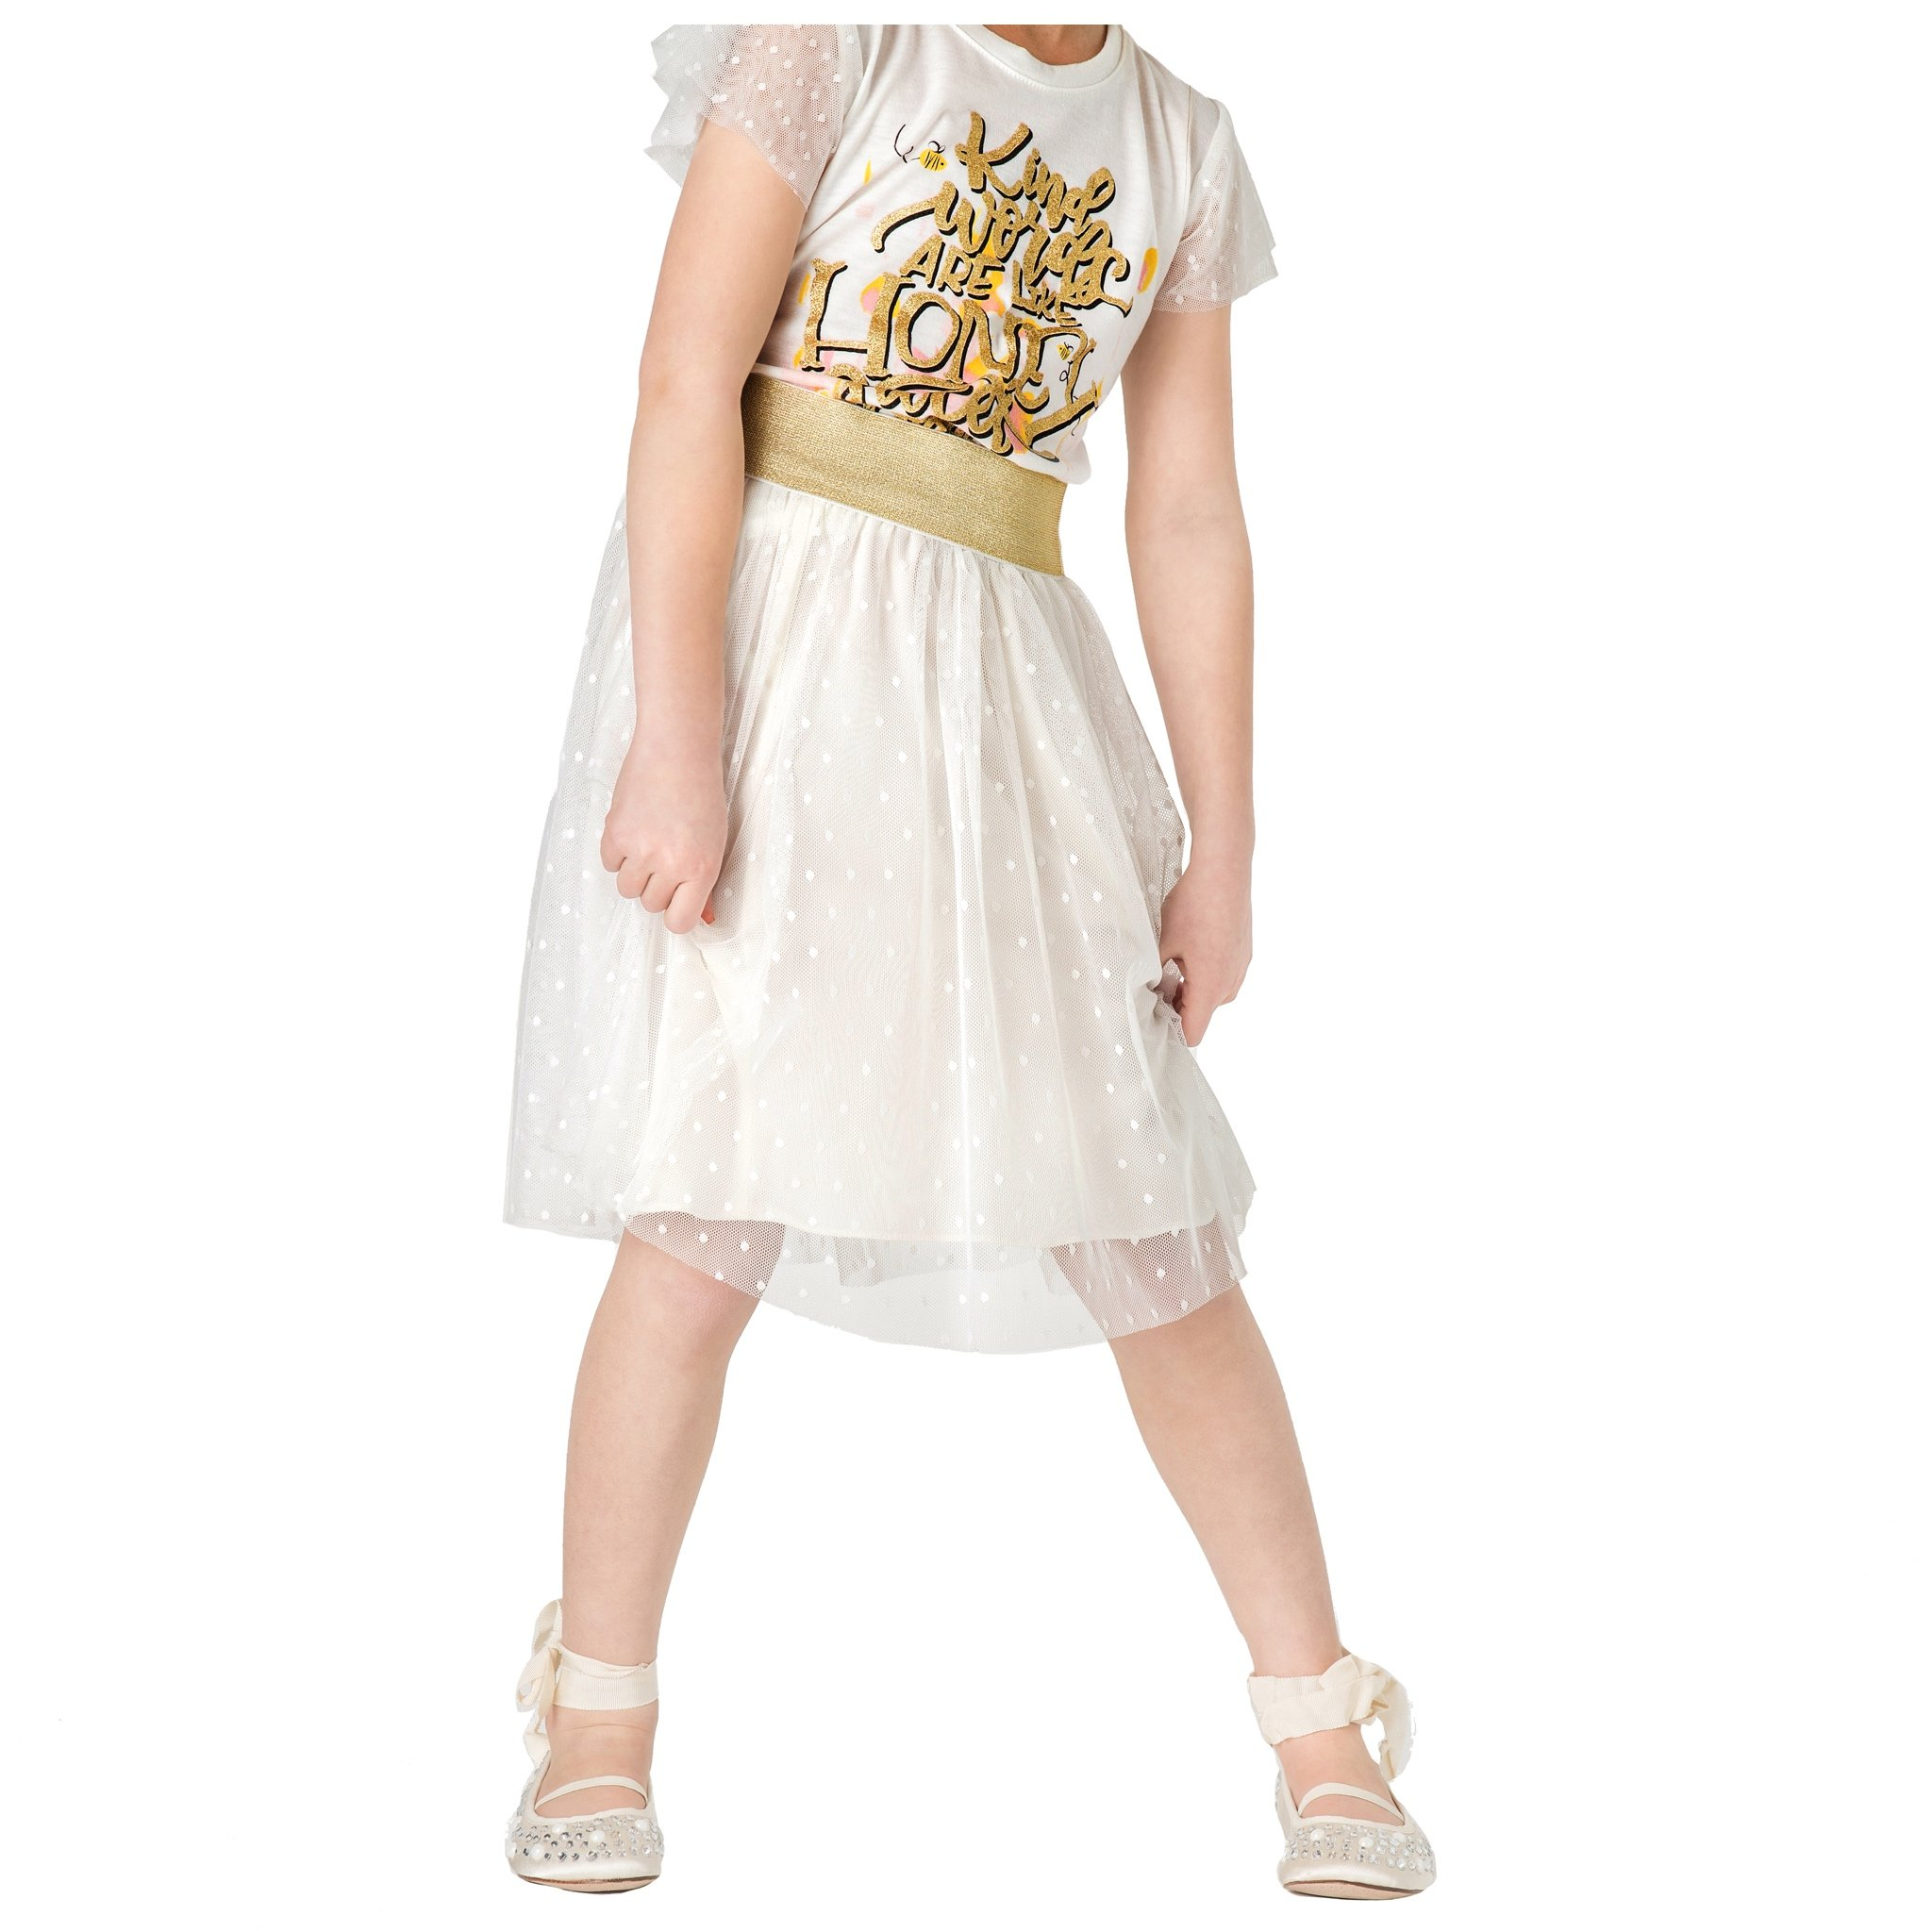 FashionxFaith Little Girls Skirts Dresses - Tillie Collection Ivory Polka Dotted Mesh Clothes for Toddlers and Kids, Medium, Made in USA